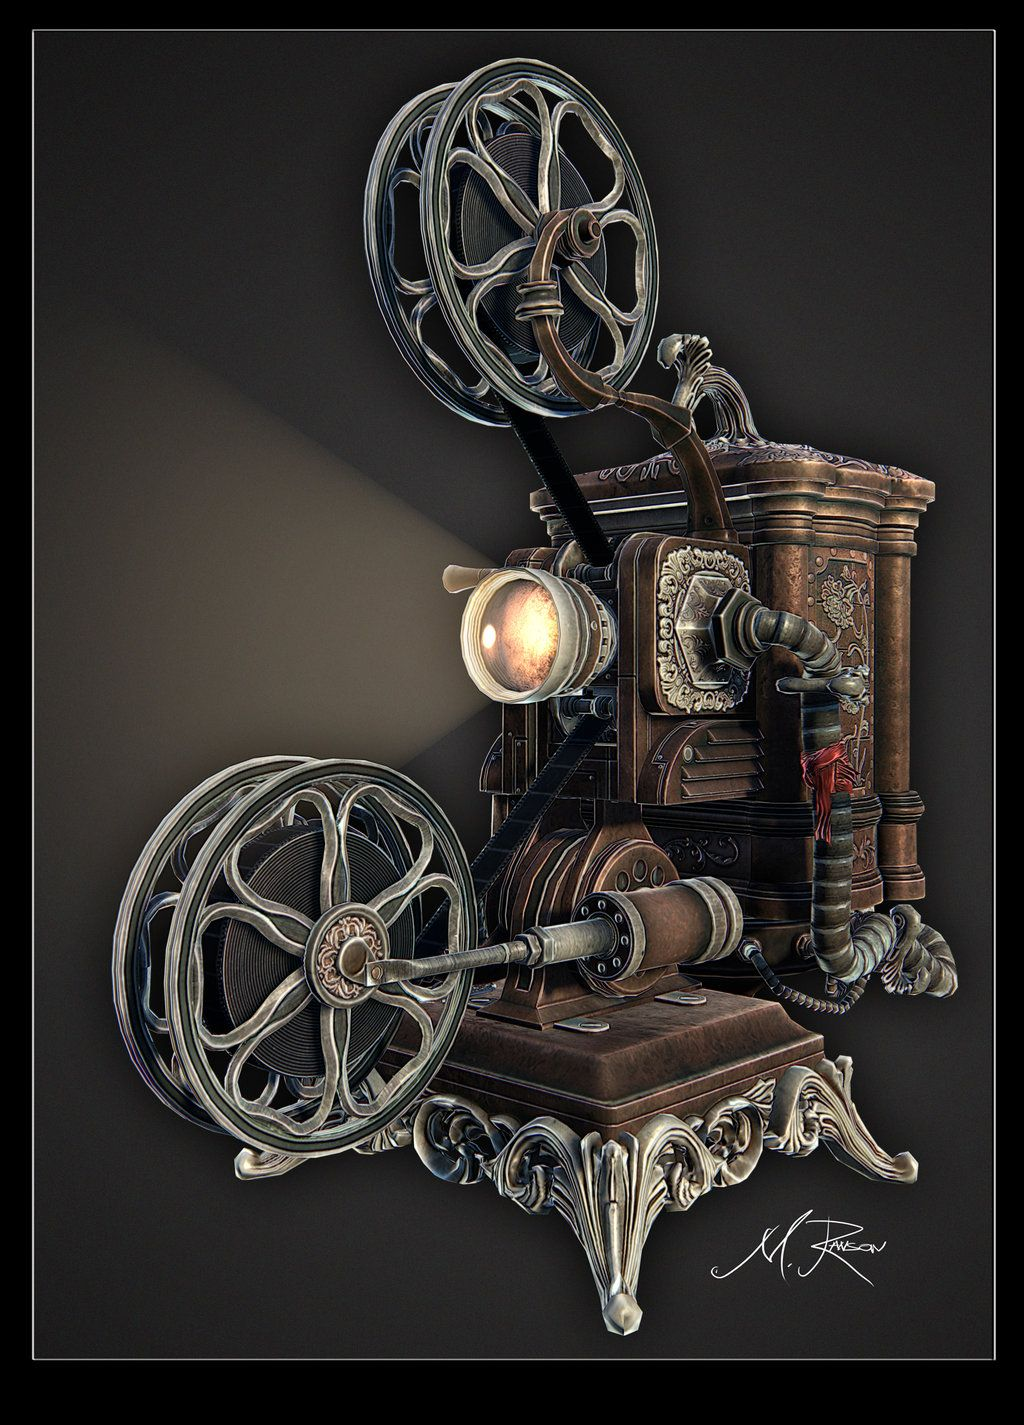 Steampunk Ideas 39steampunk 39 Ampro Projector Final01by Lost Artist89